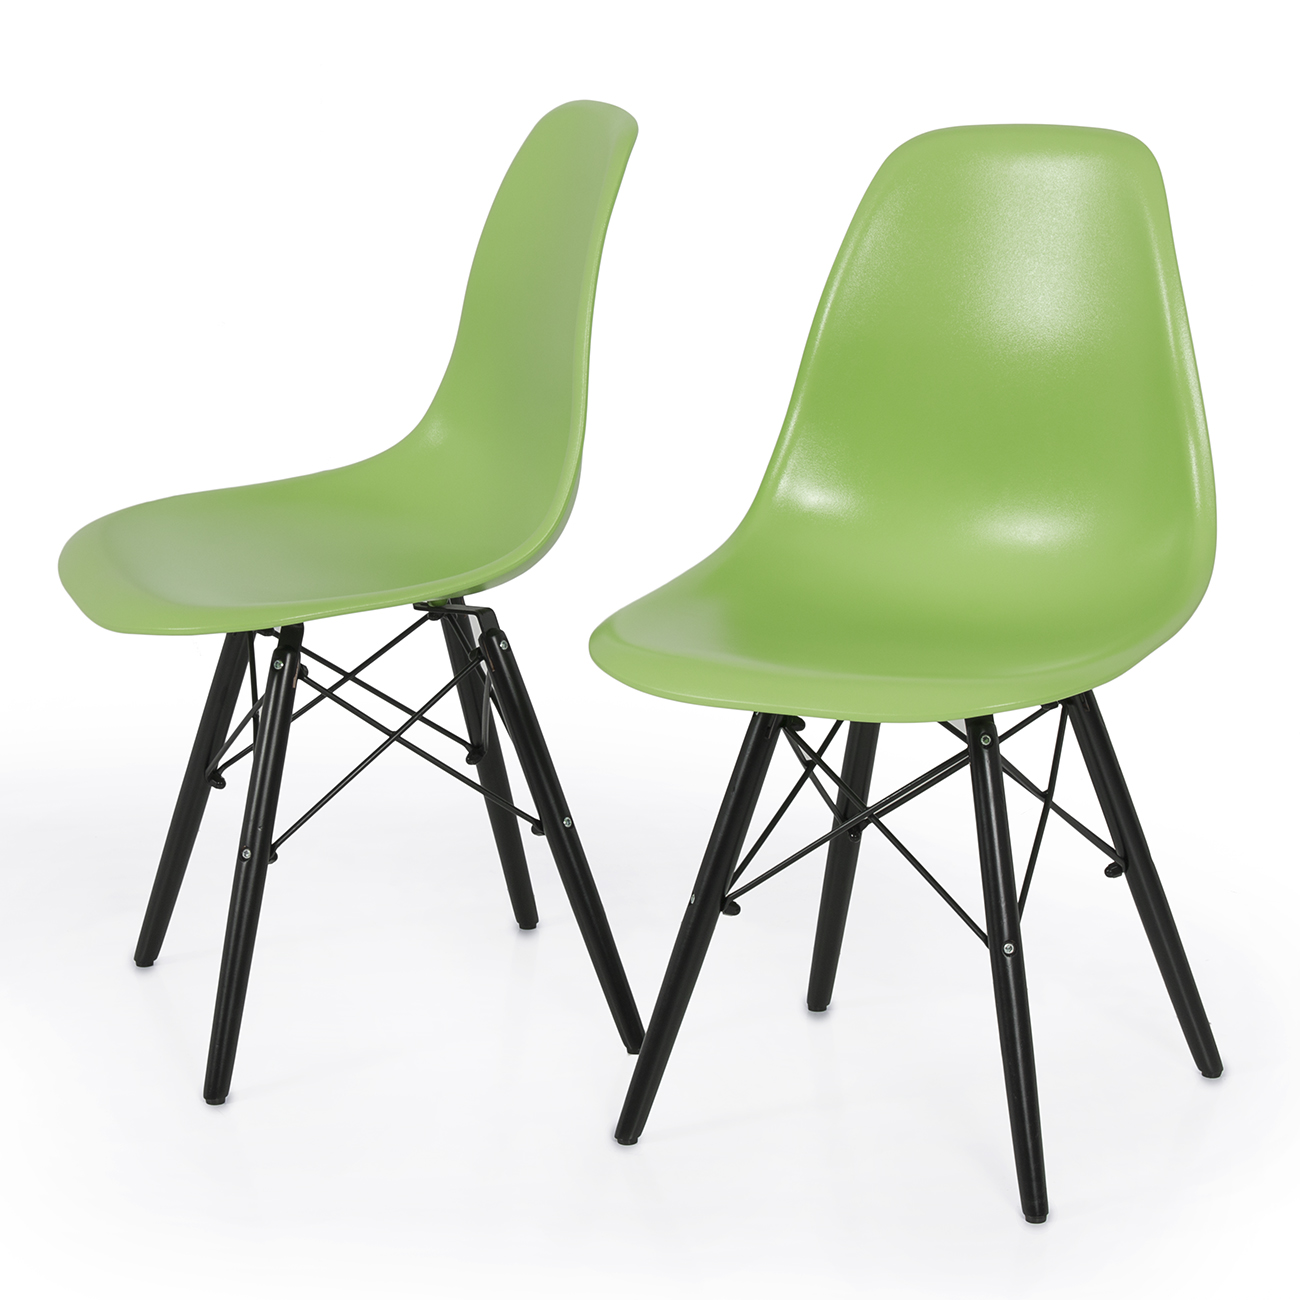 2x DSW Molded ABS Plastic Side Chair Eiffel